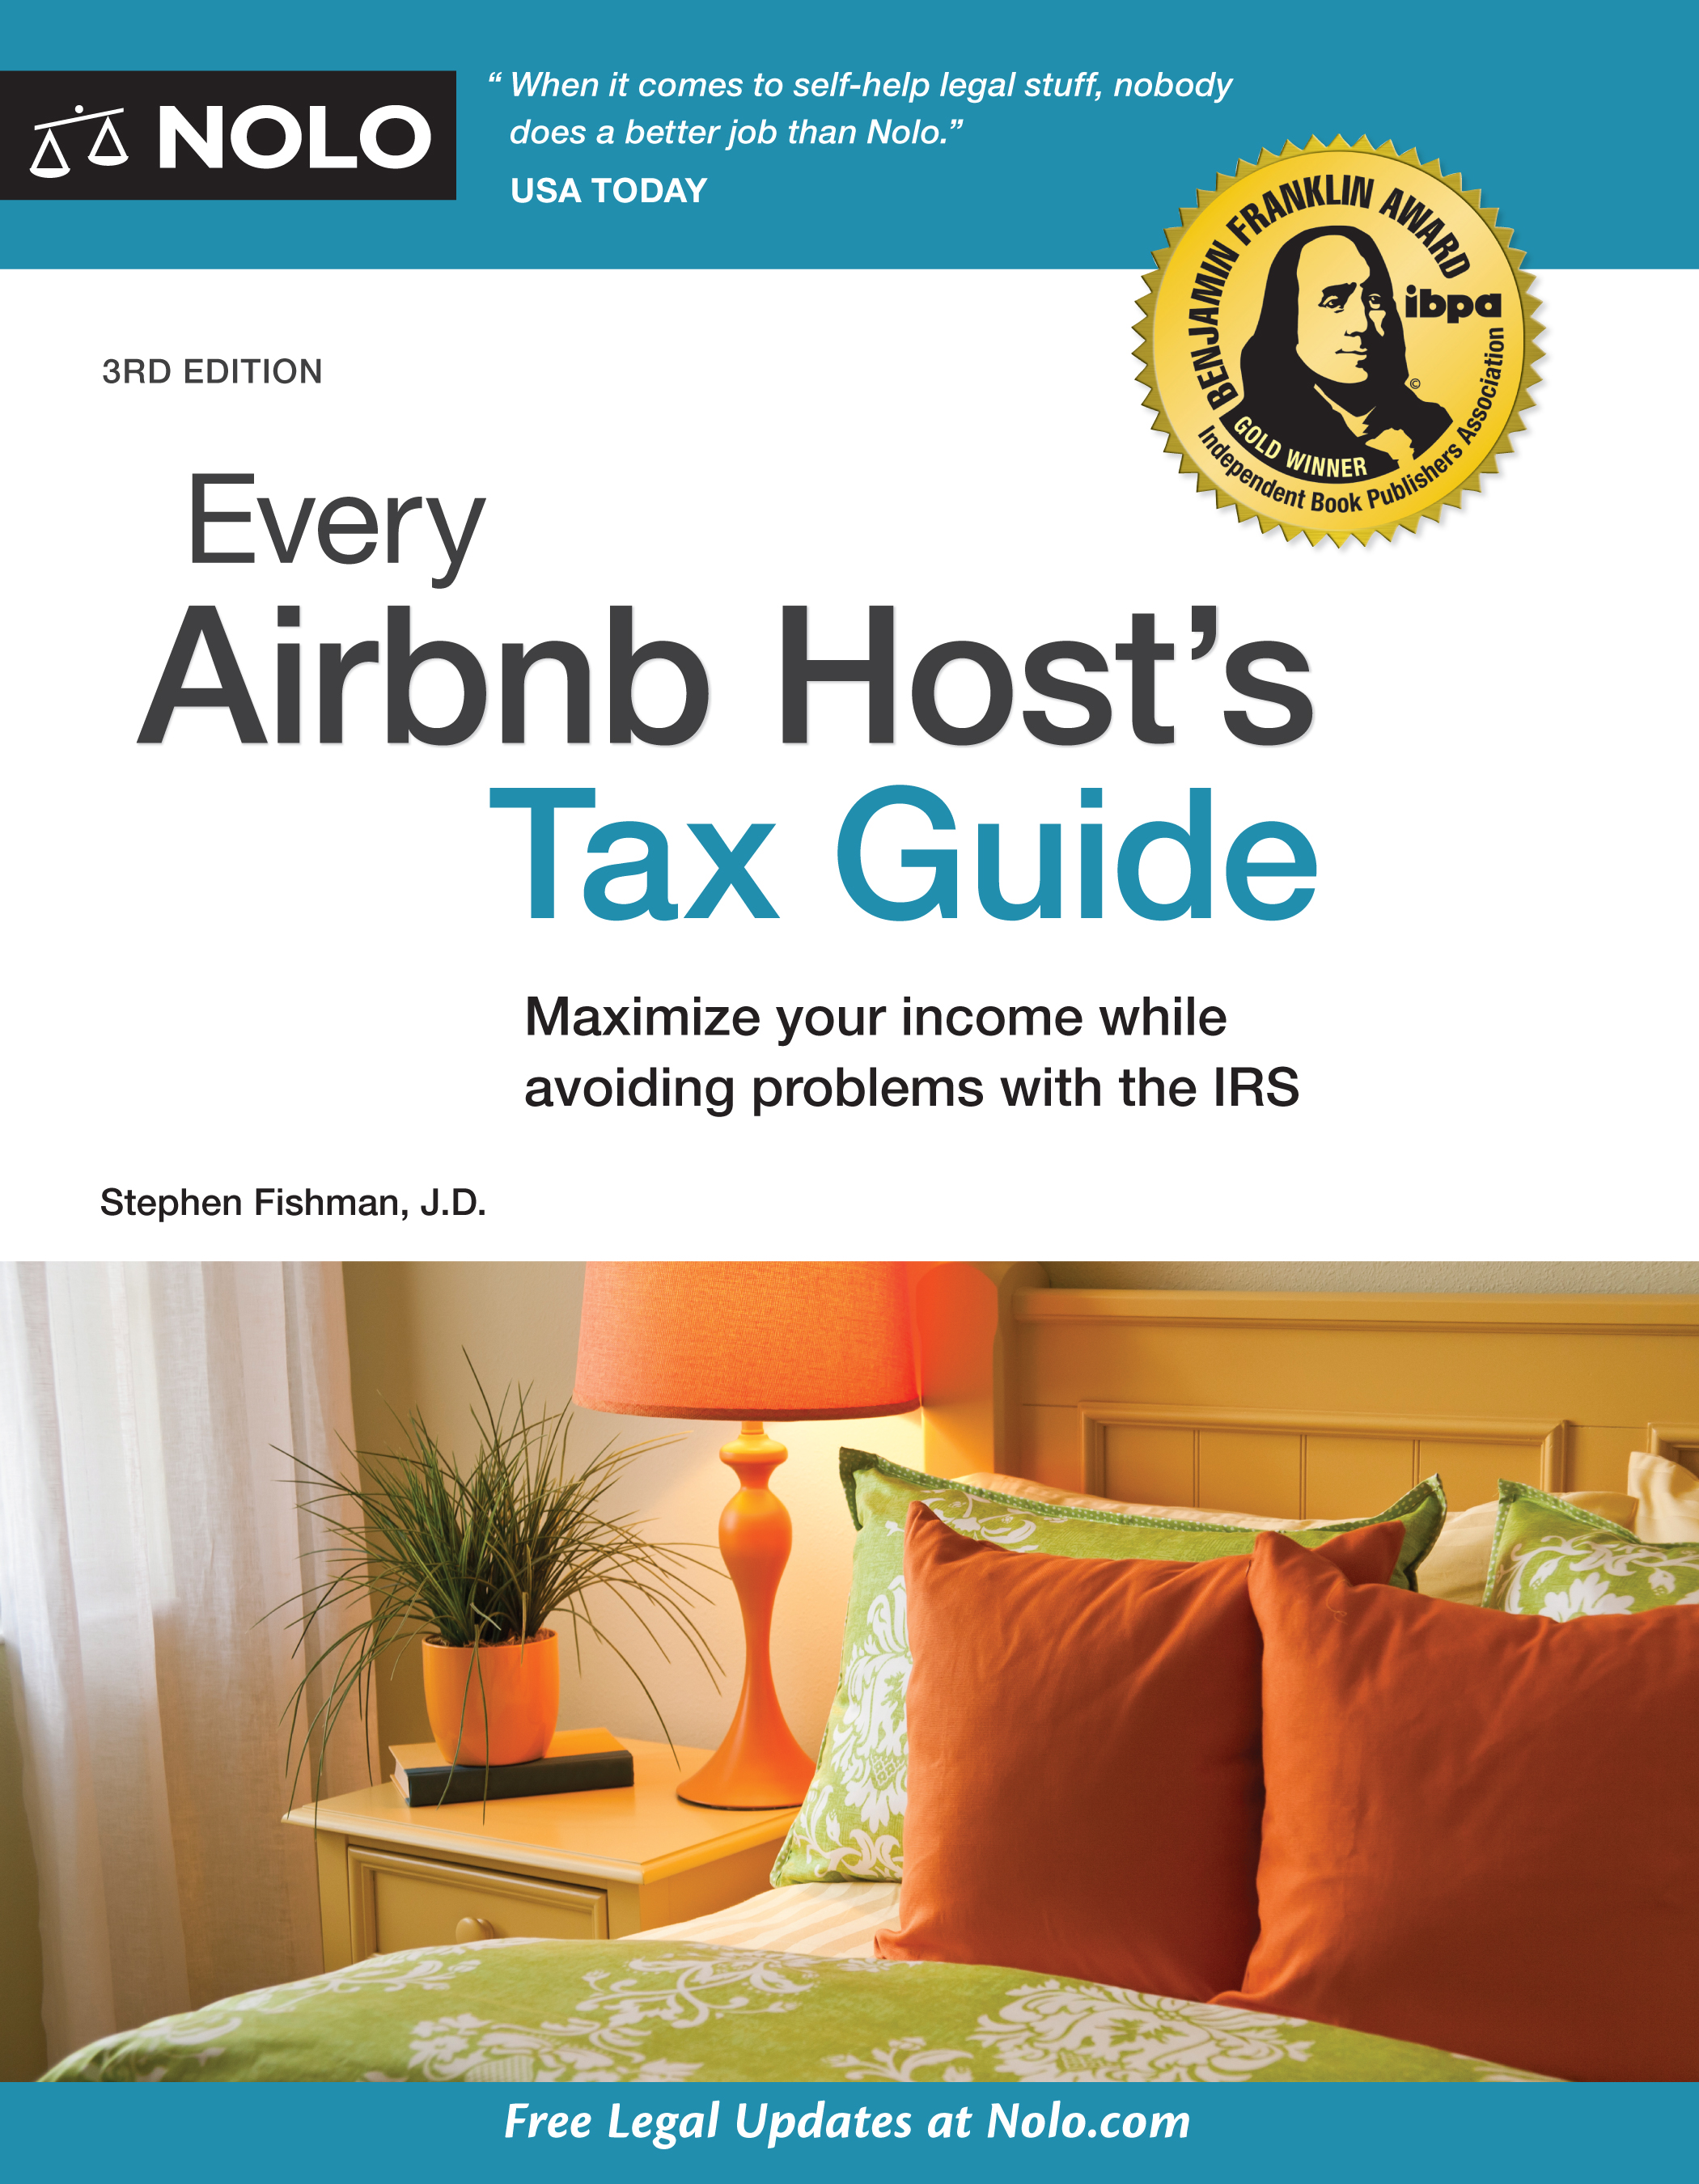 Every Airbnb Host's Tax Guide (3rd edition) - #4755